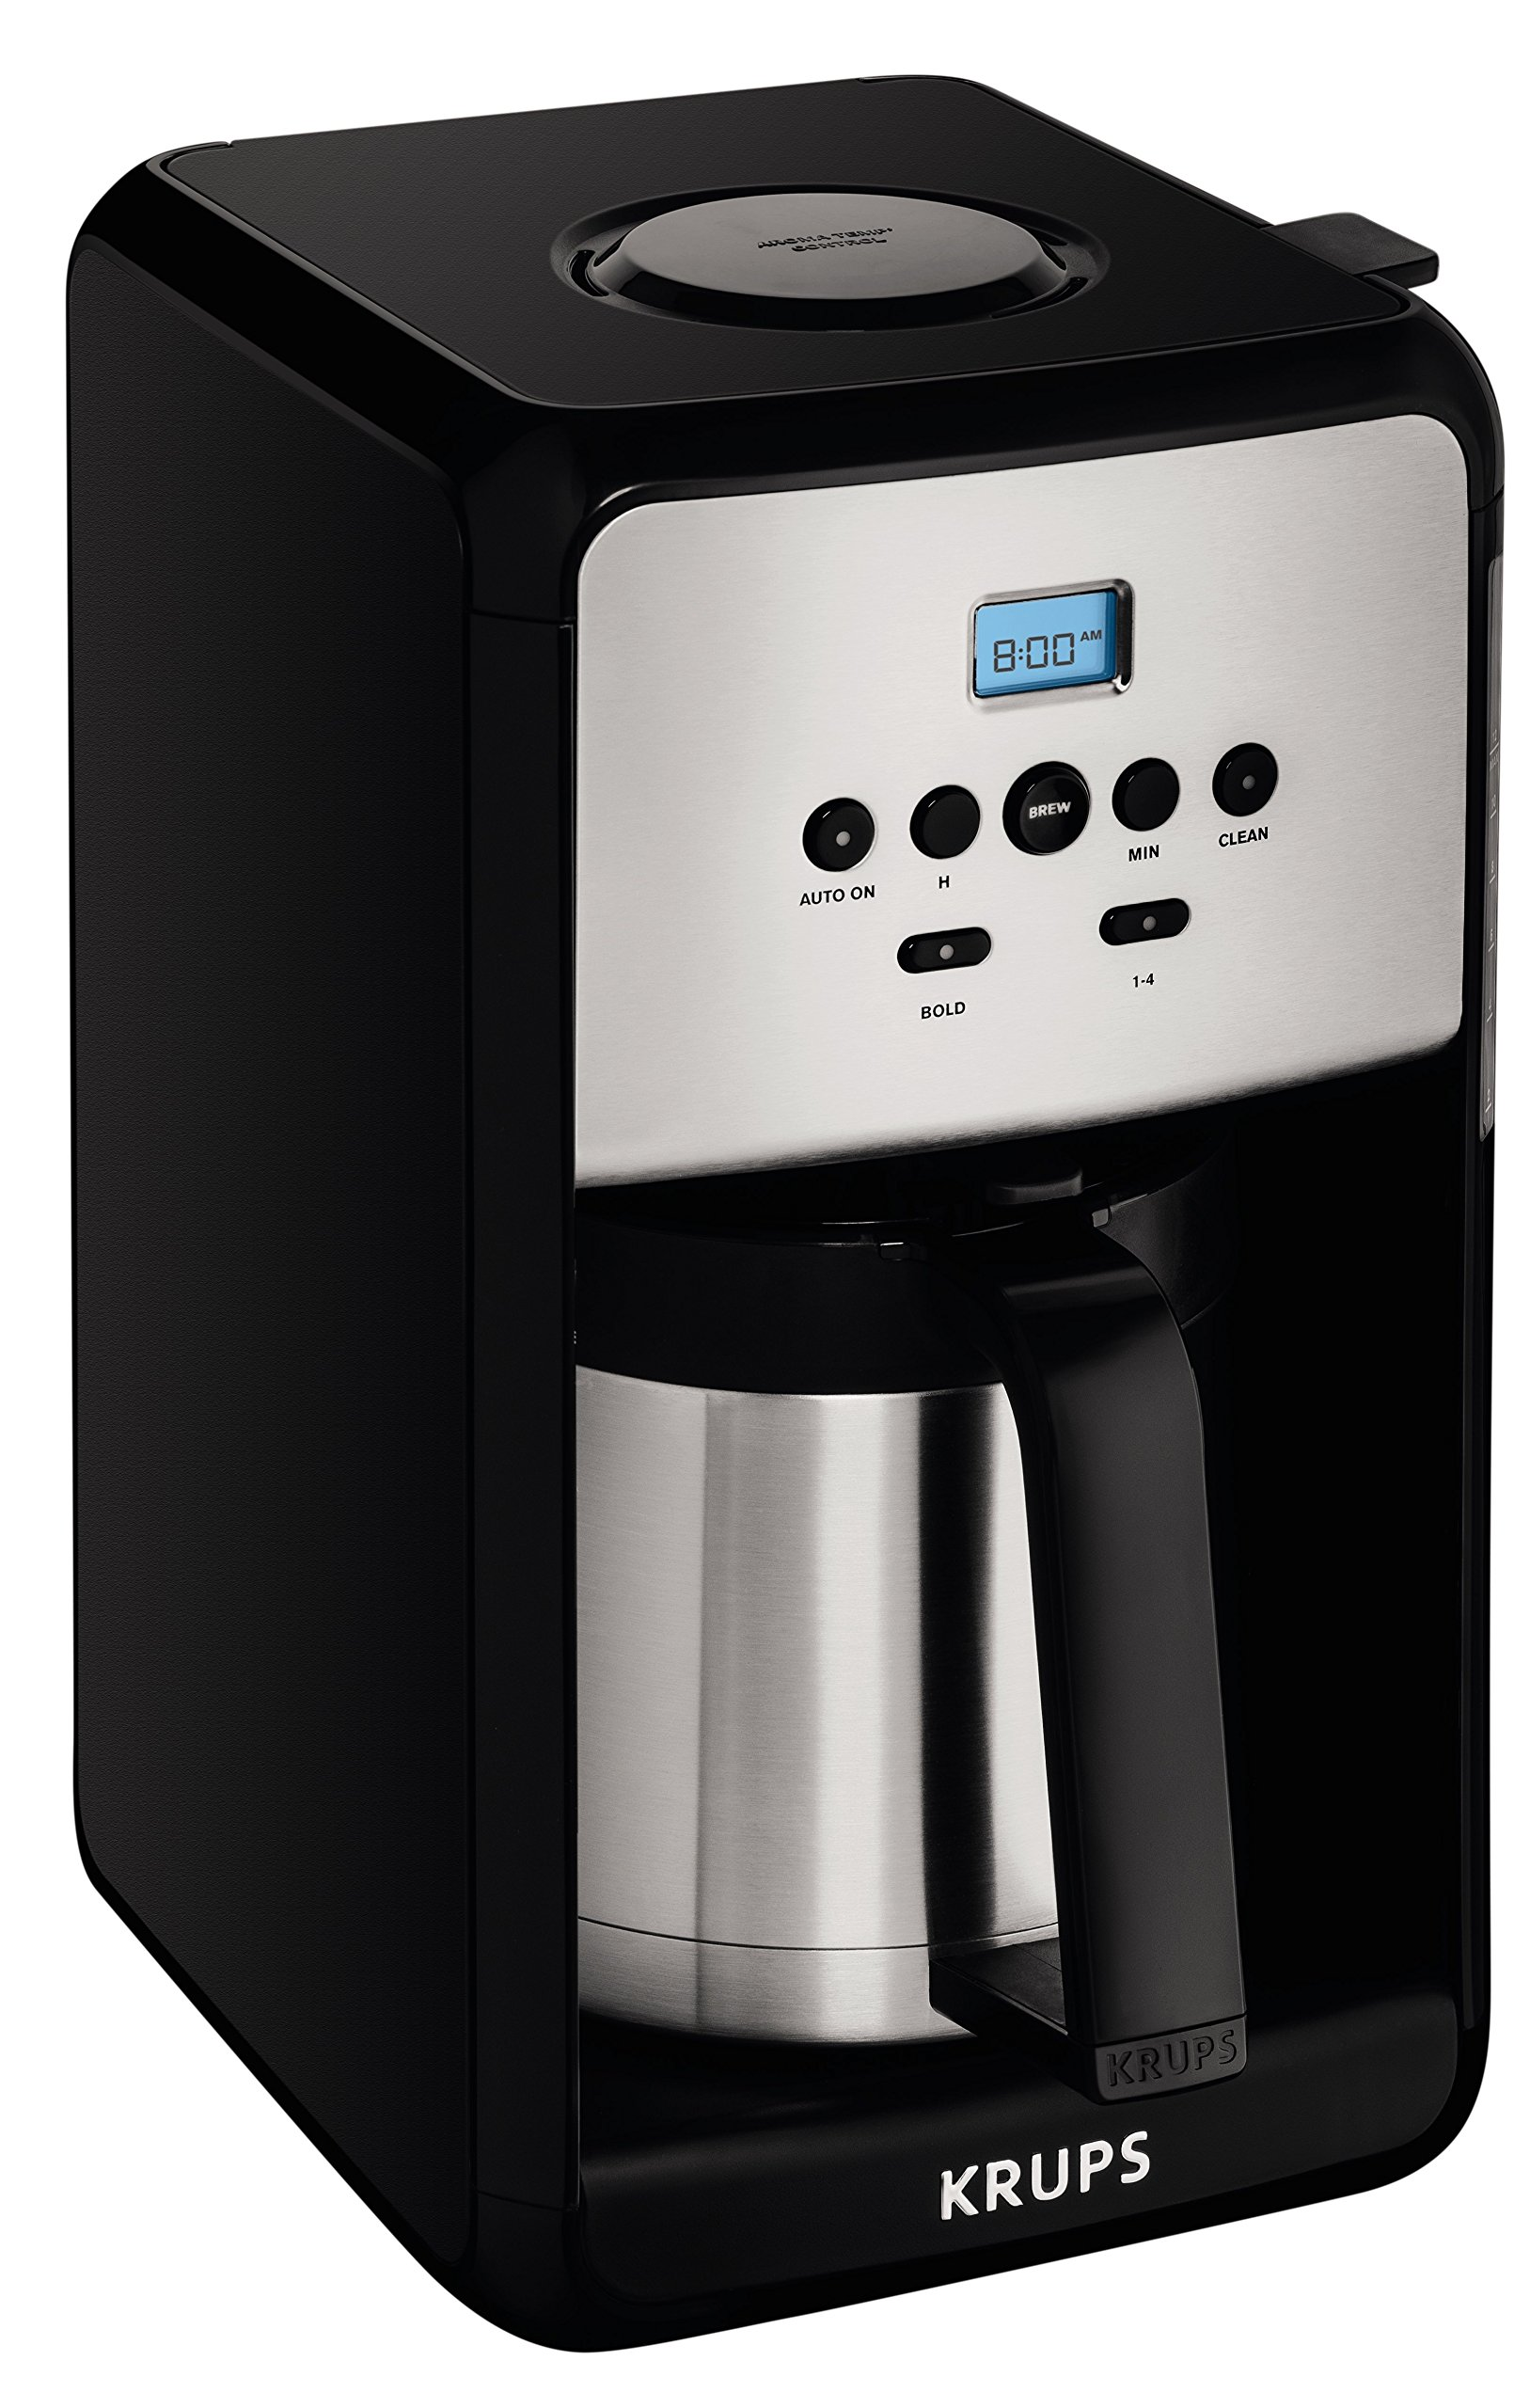 KRUPS Coffee Programmable Thermal Carafe